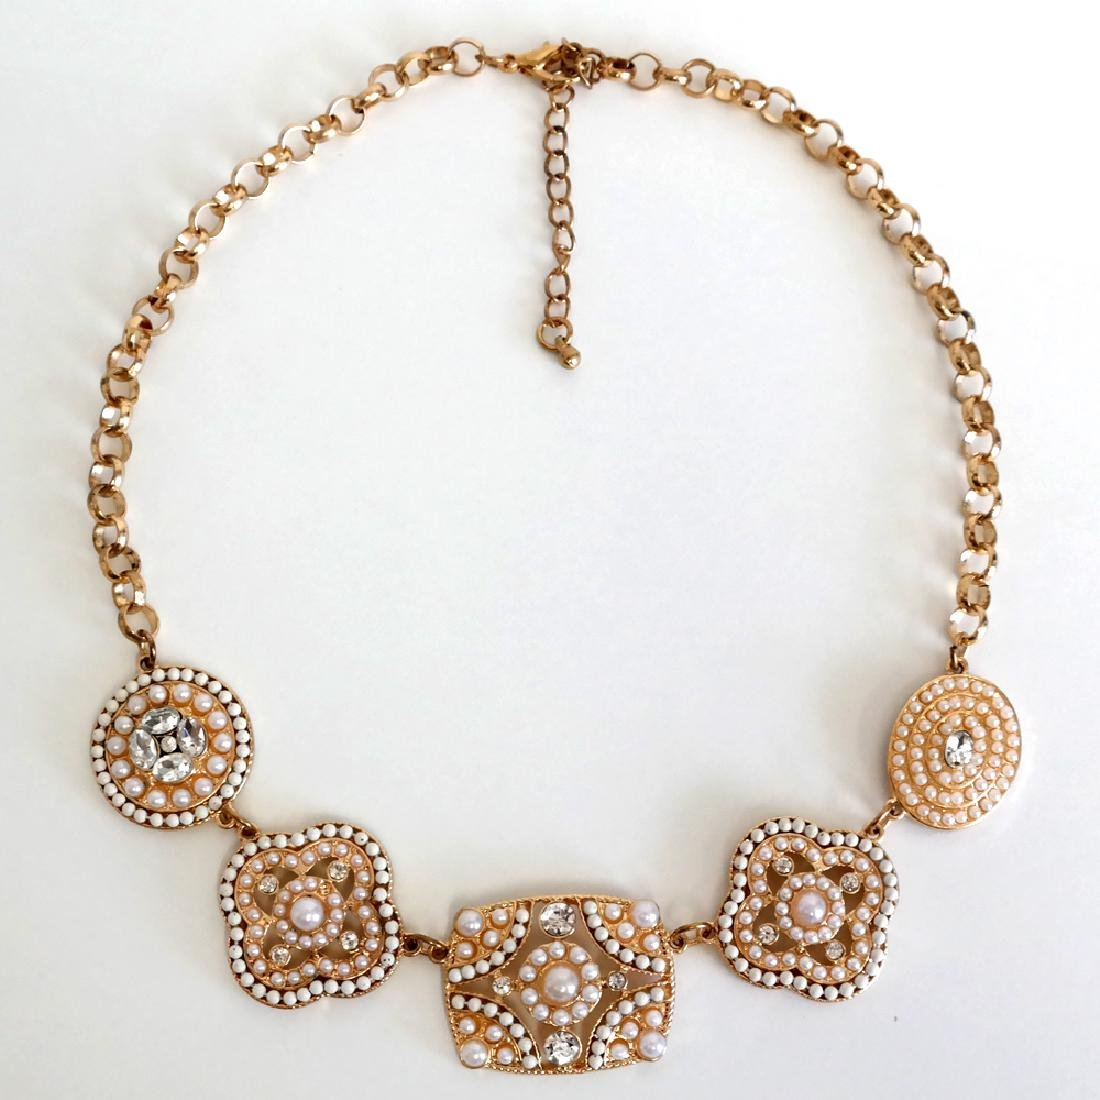 Gold tone necklace with white rhinestones and white